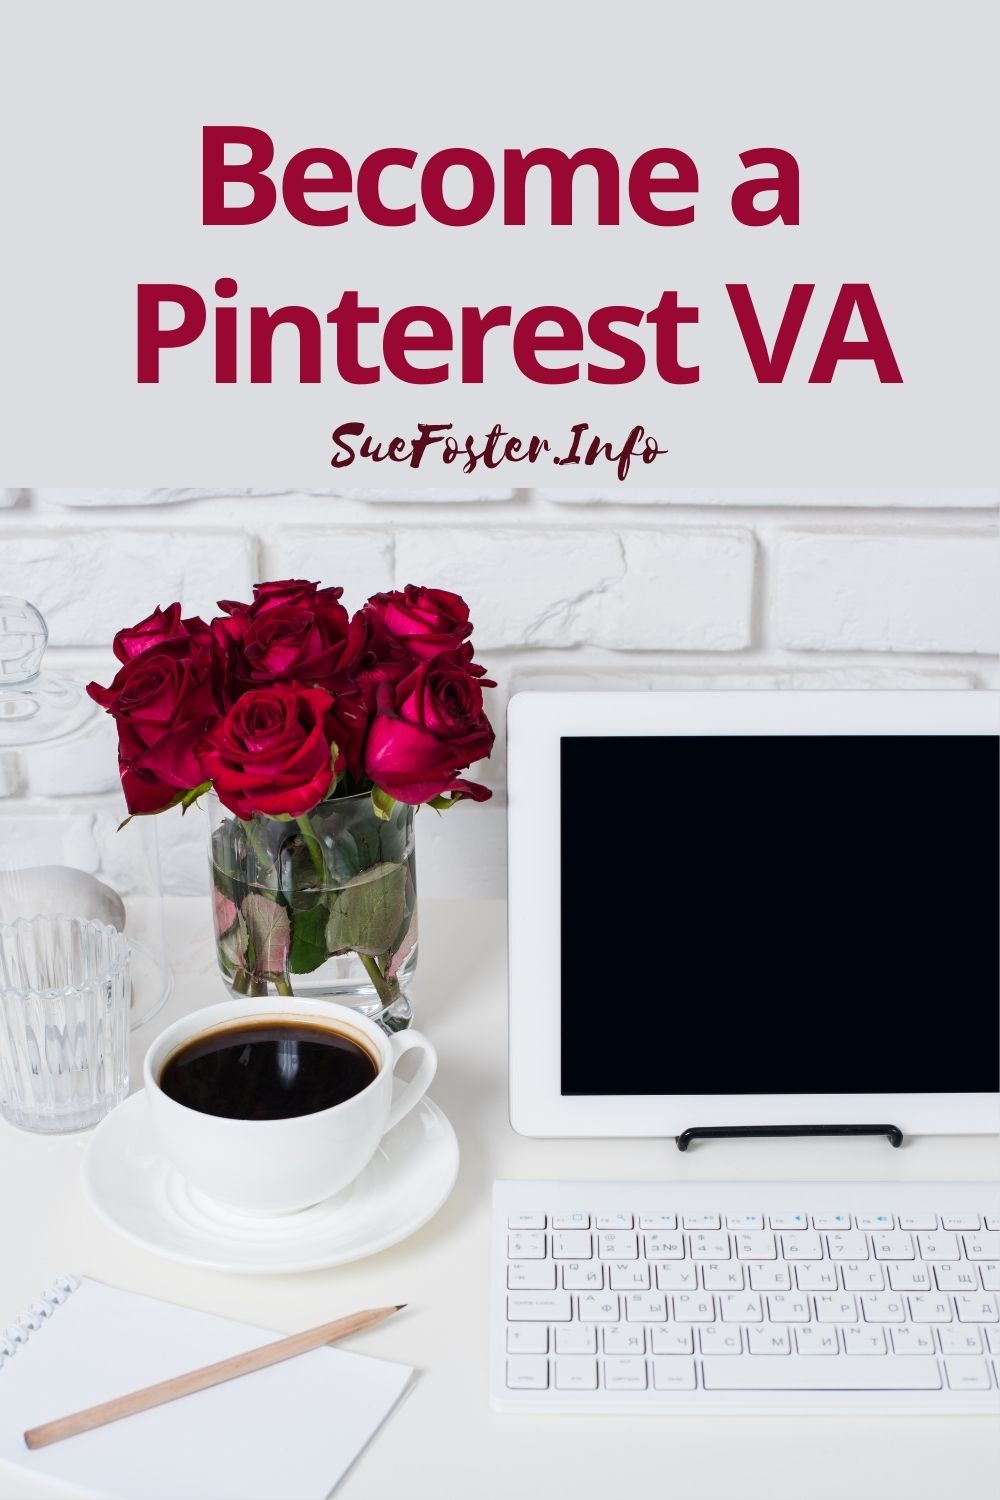 Become a Pinterest VA - Work from home self-study program.